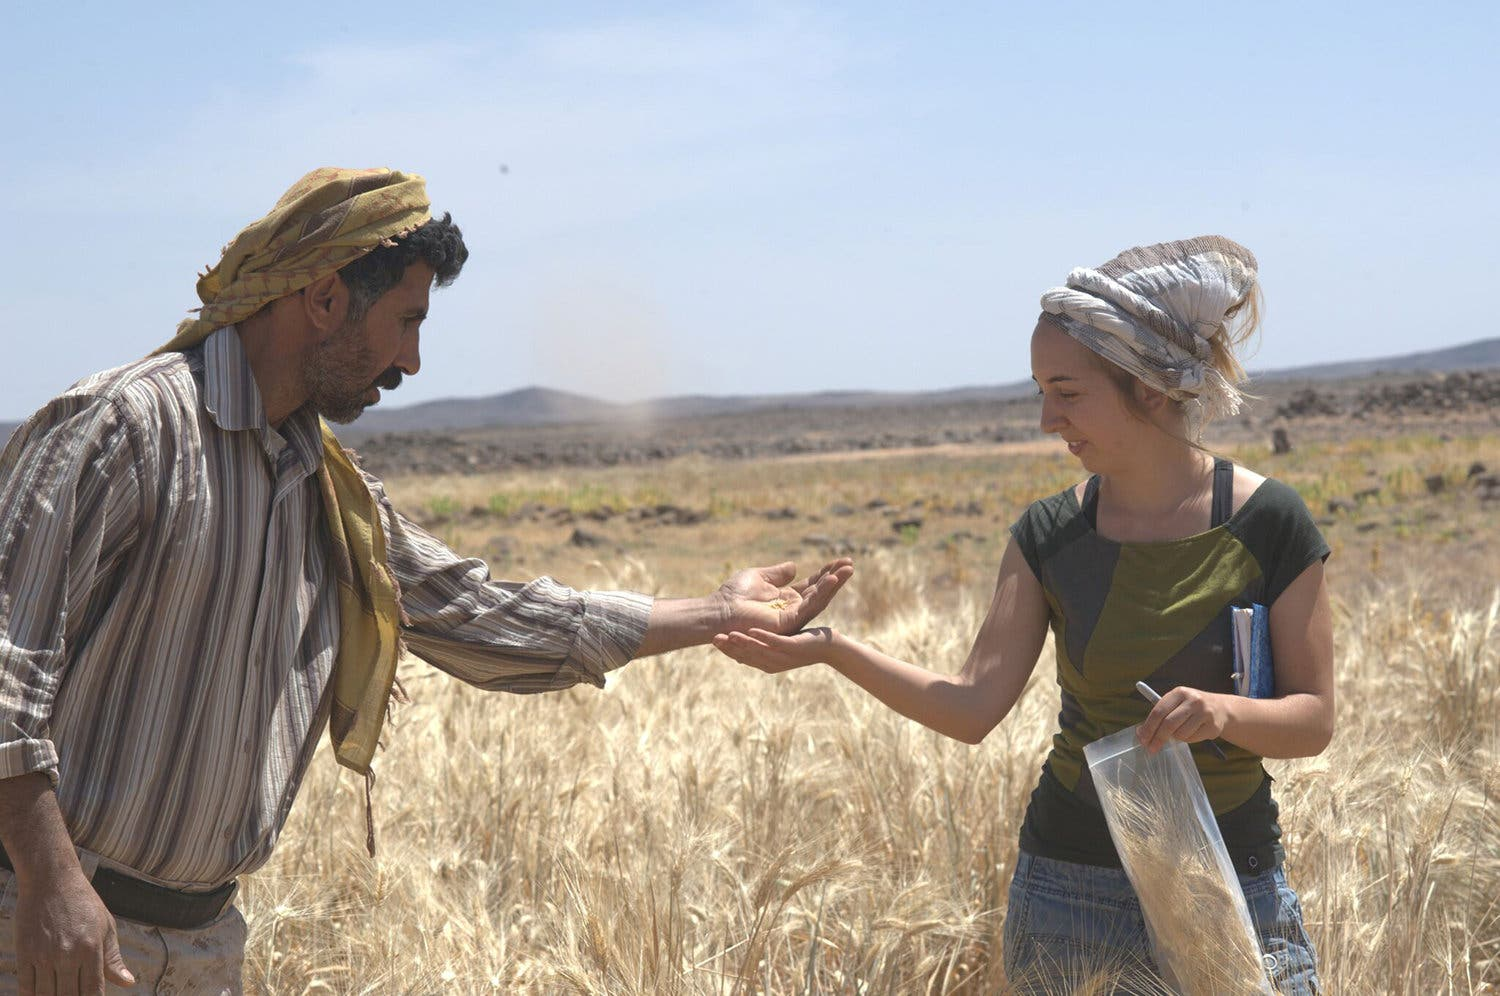 Amaia Arranz-Otaegui, a University of Copenhagen postdoctoral researcher in archaeobotany, and Ali Shakaiteer, a local assistant to researchers working at an archeological site in the Black Desert in northeastern Jordan, collecting wheat. (Reuters)